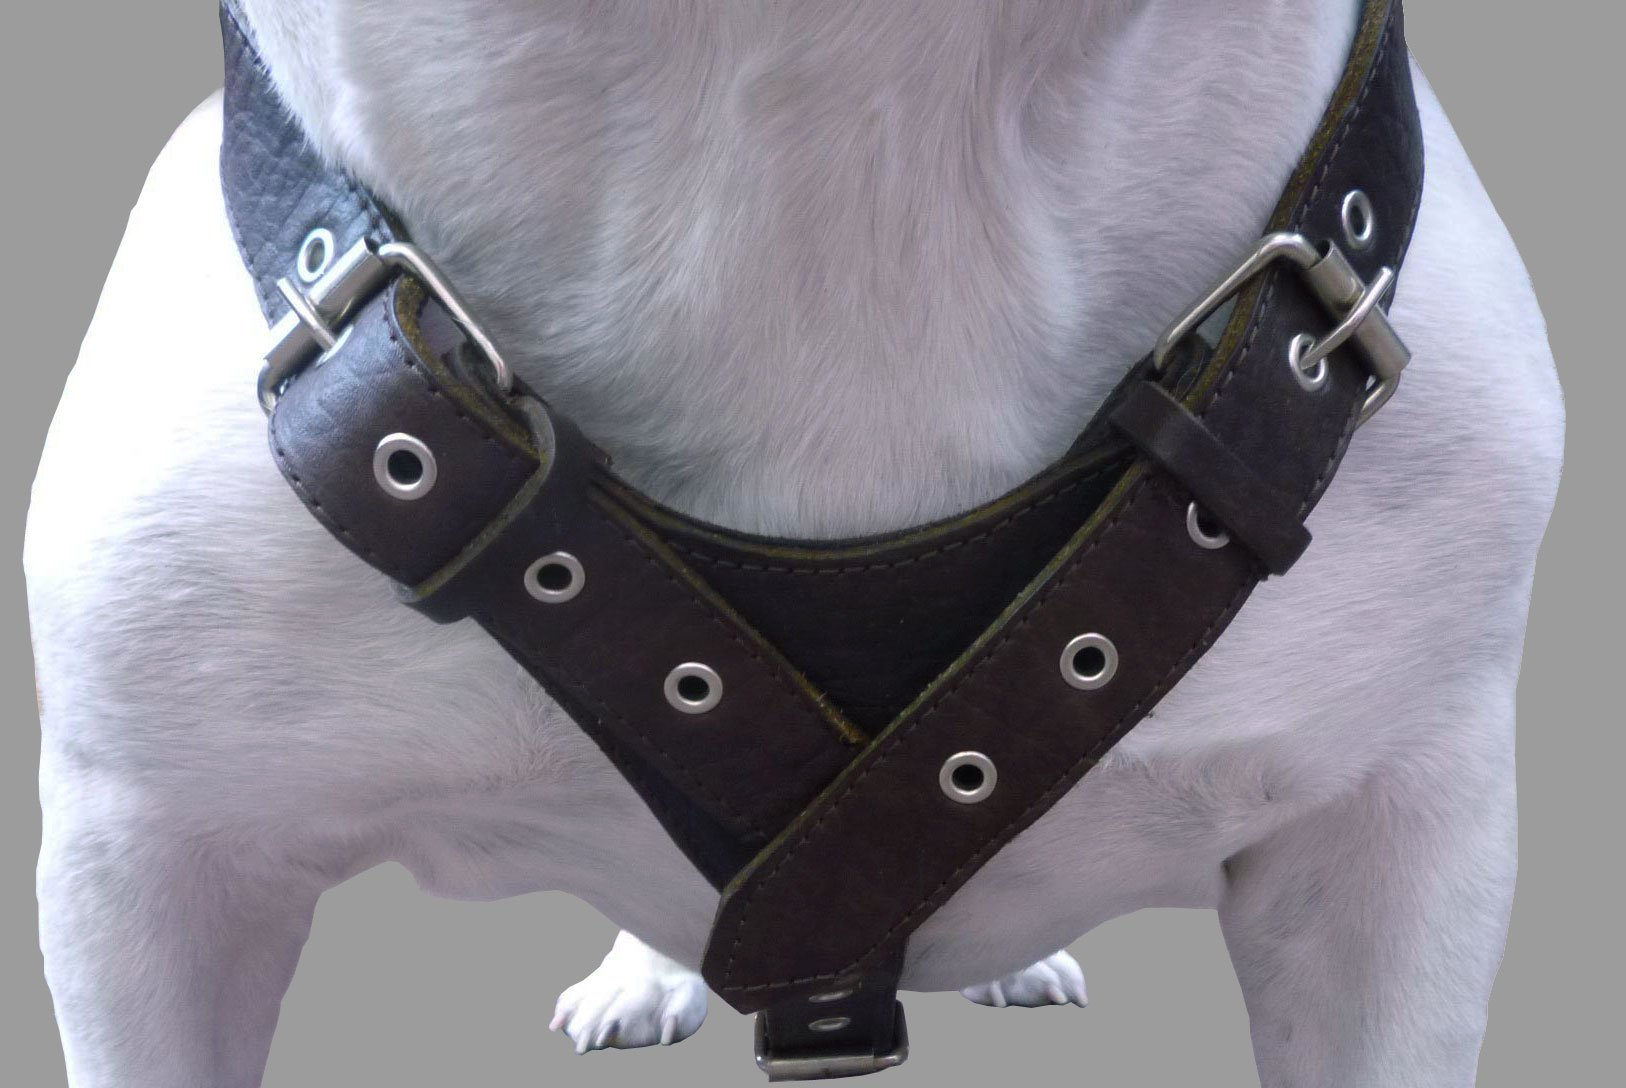 10 Lbs Brown Genuine Leather Weighted Pulling Dog Harness for Exercise and Training. Fits 35''-44'' Chest by Dogs My Love (Image #3)